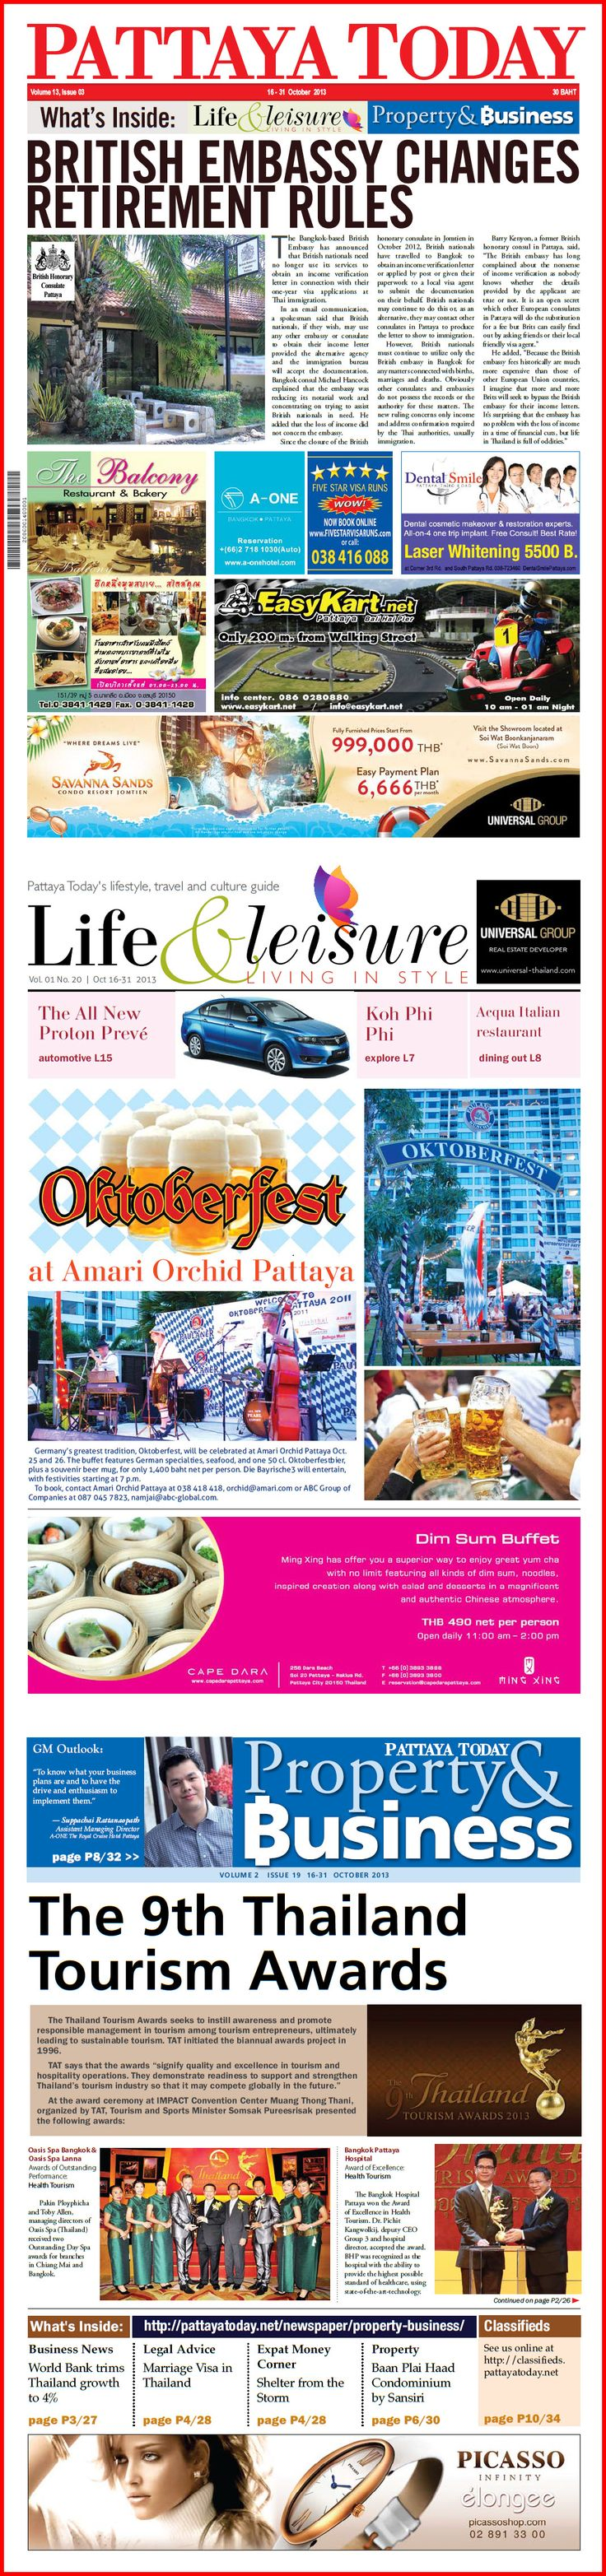 Travelling to Pattaya this weekend – keep yourself abreast with the latest news by reading PATTAYA TODAY NEWSPAPER – A fortnightly English language publication that is packed full of timely news, social activities as well as the latest updates on the property market, which is sure to keep you well informed of the latest happenings in and around Pattaya and Thailand.  Get your latest October 16-31 copy today